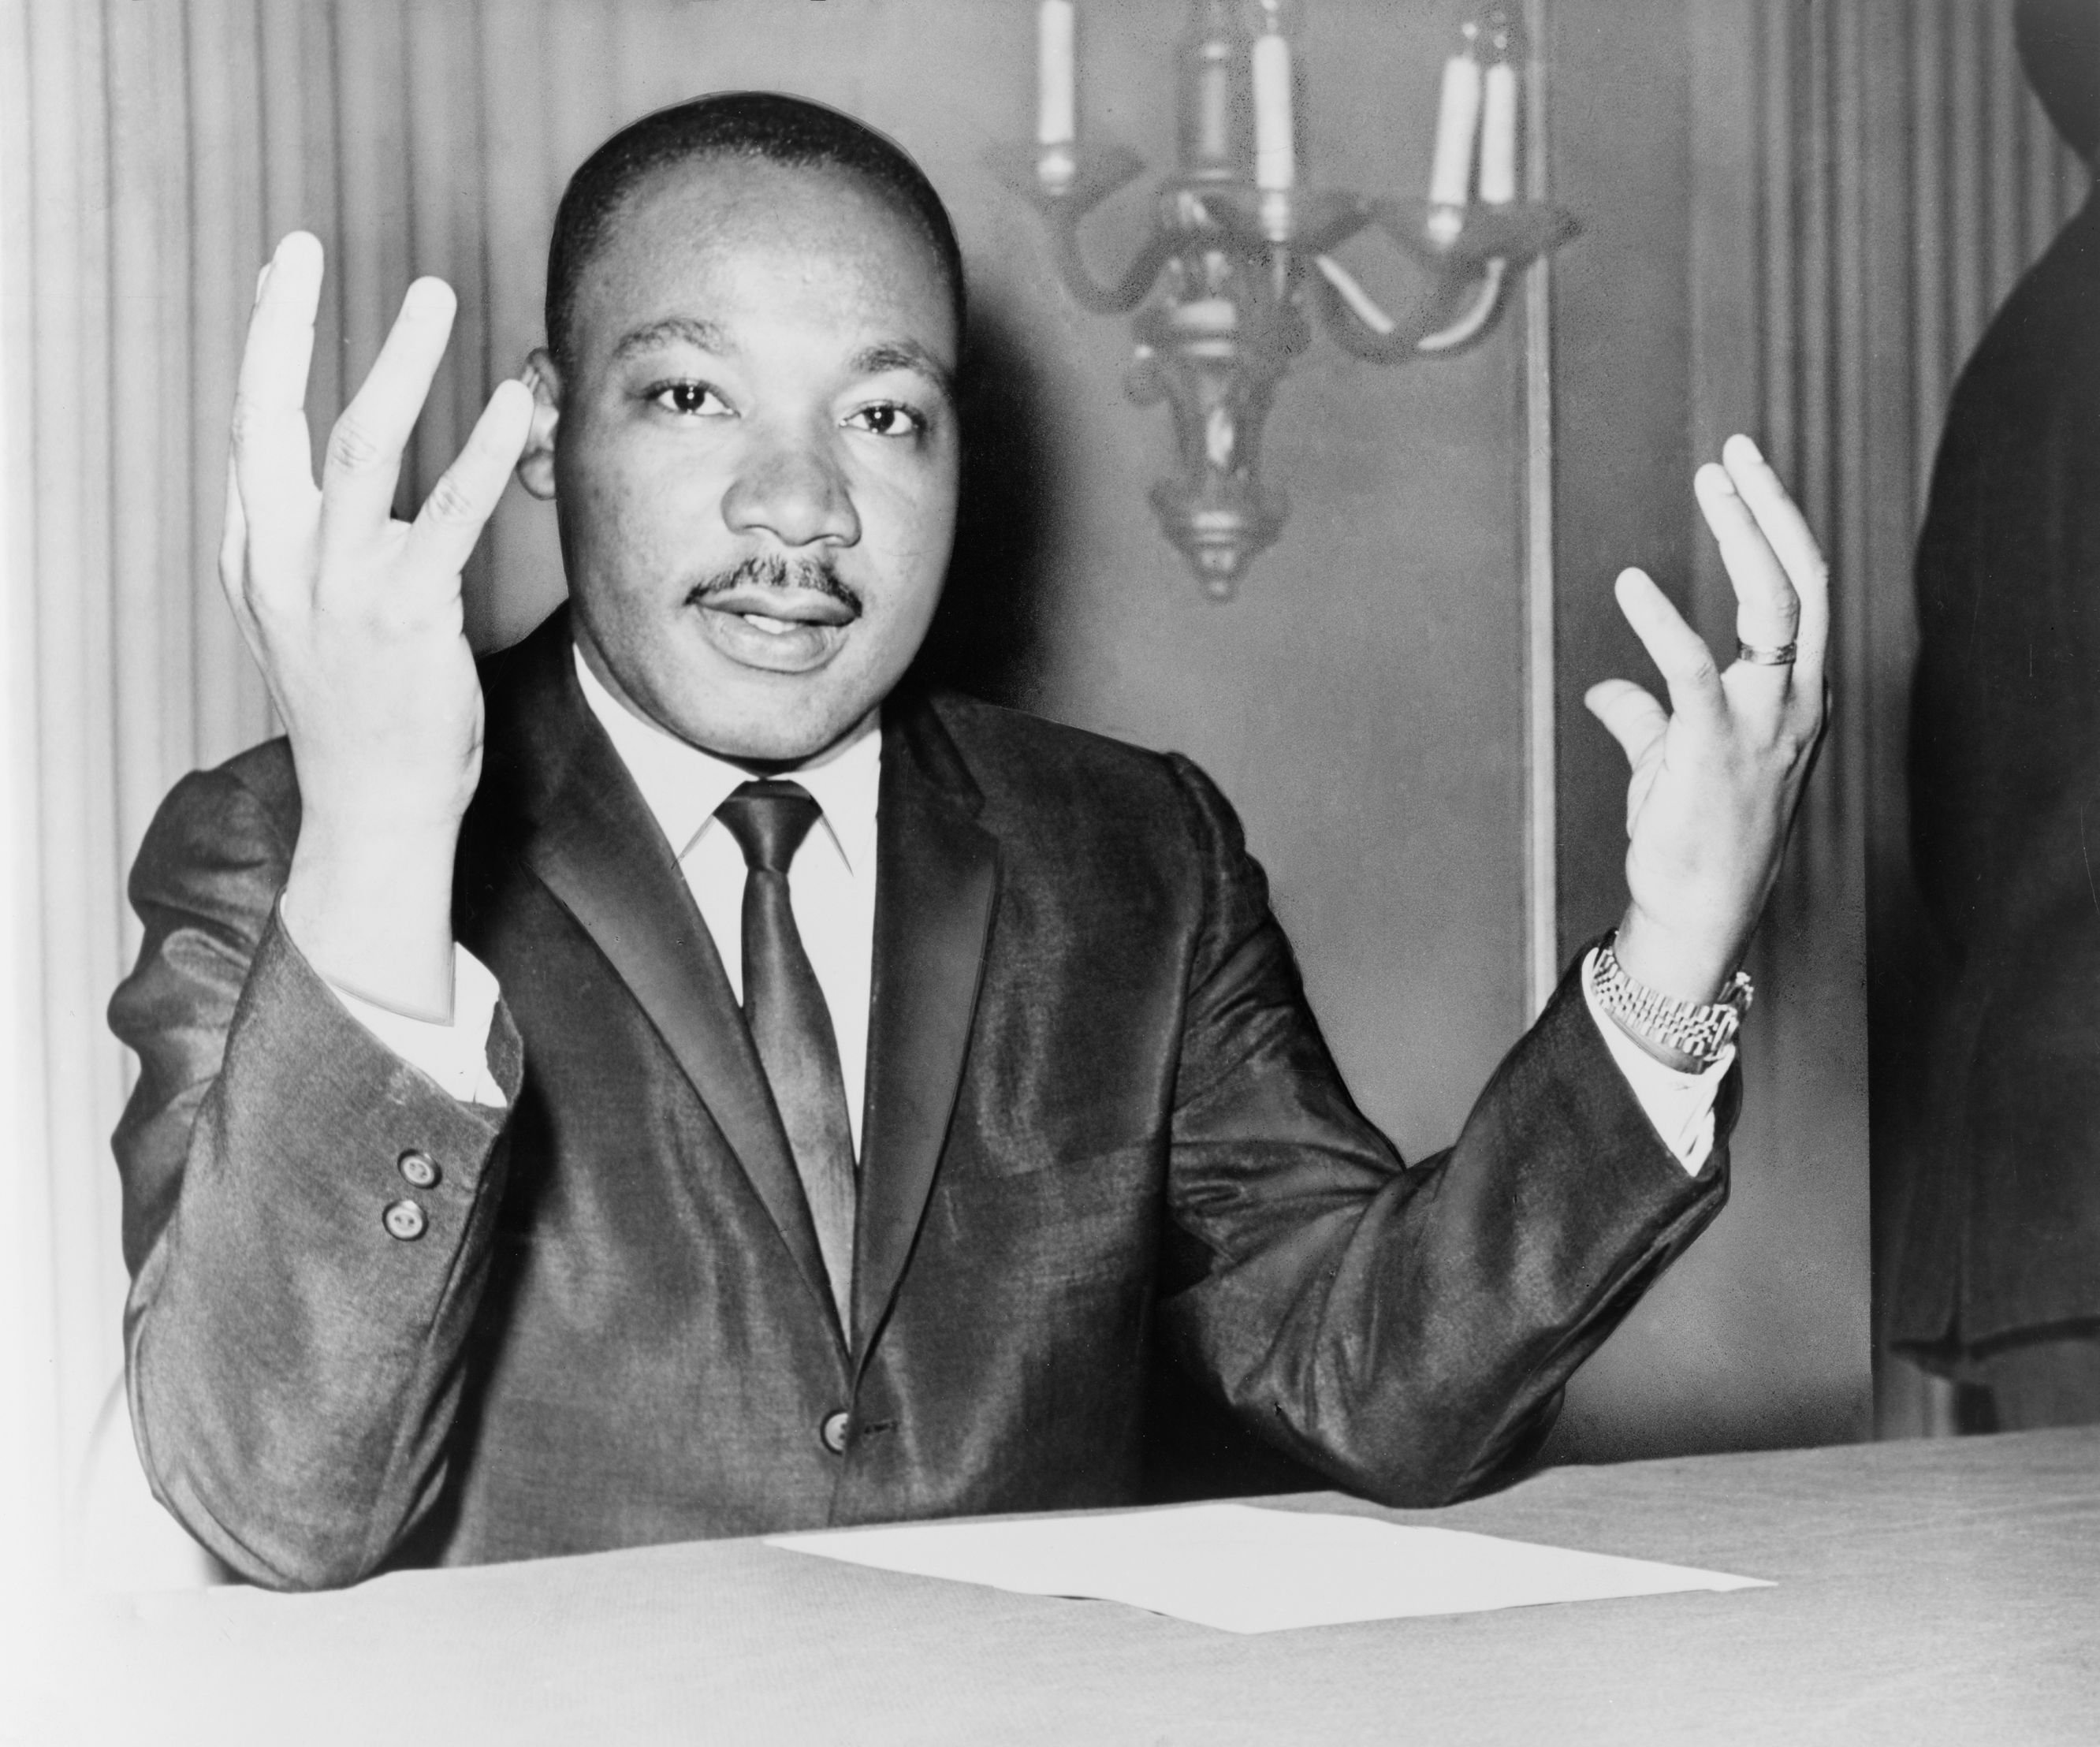 File:Martin Luther King Jr NYWTS 6.jpg - Wikimedia Commons